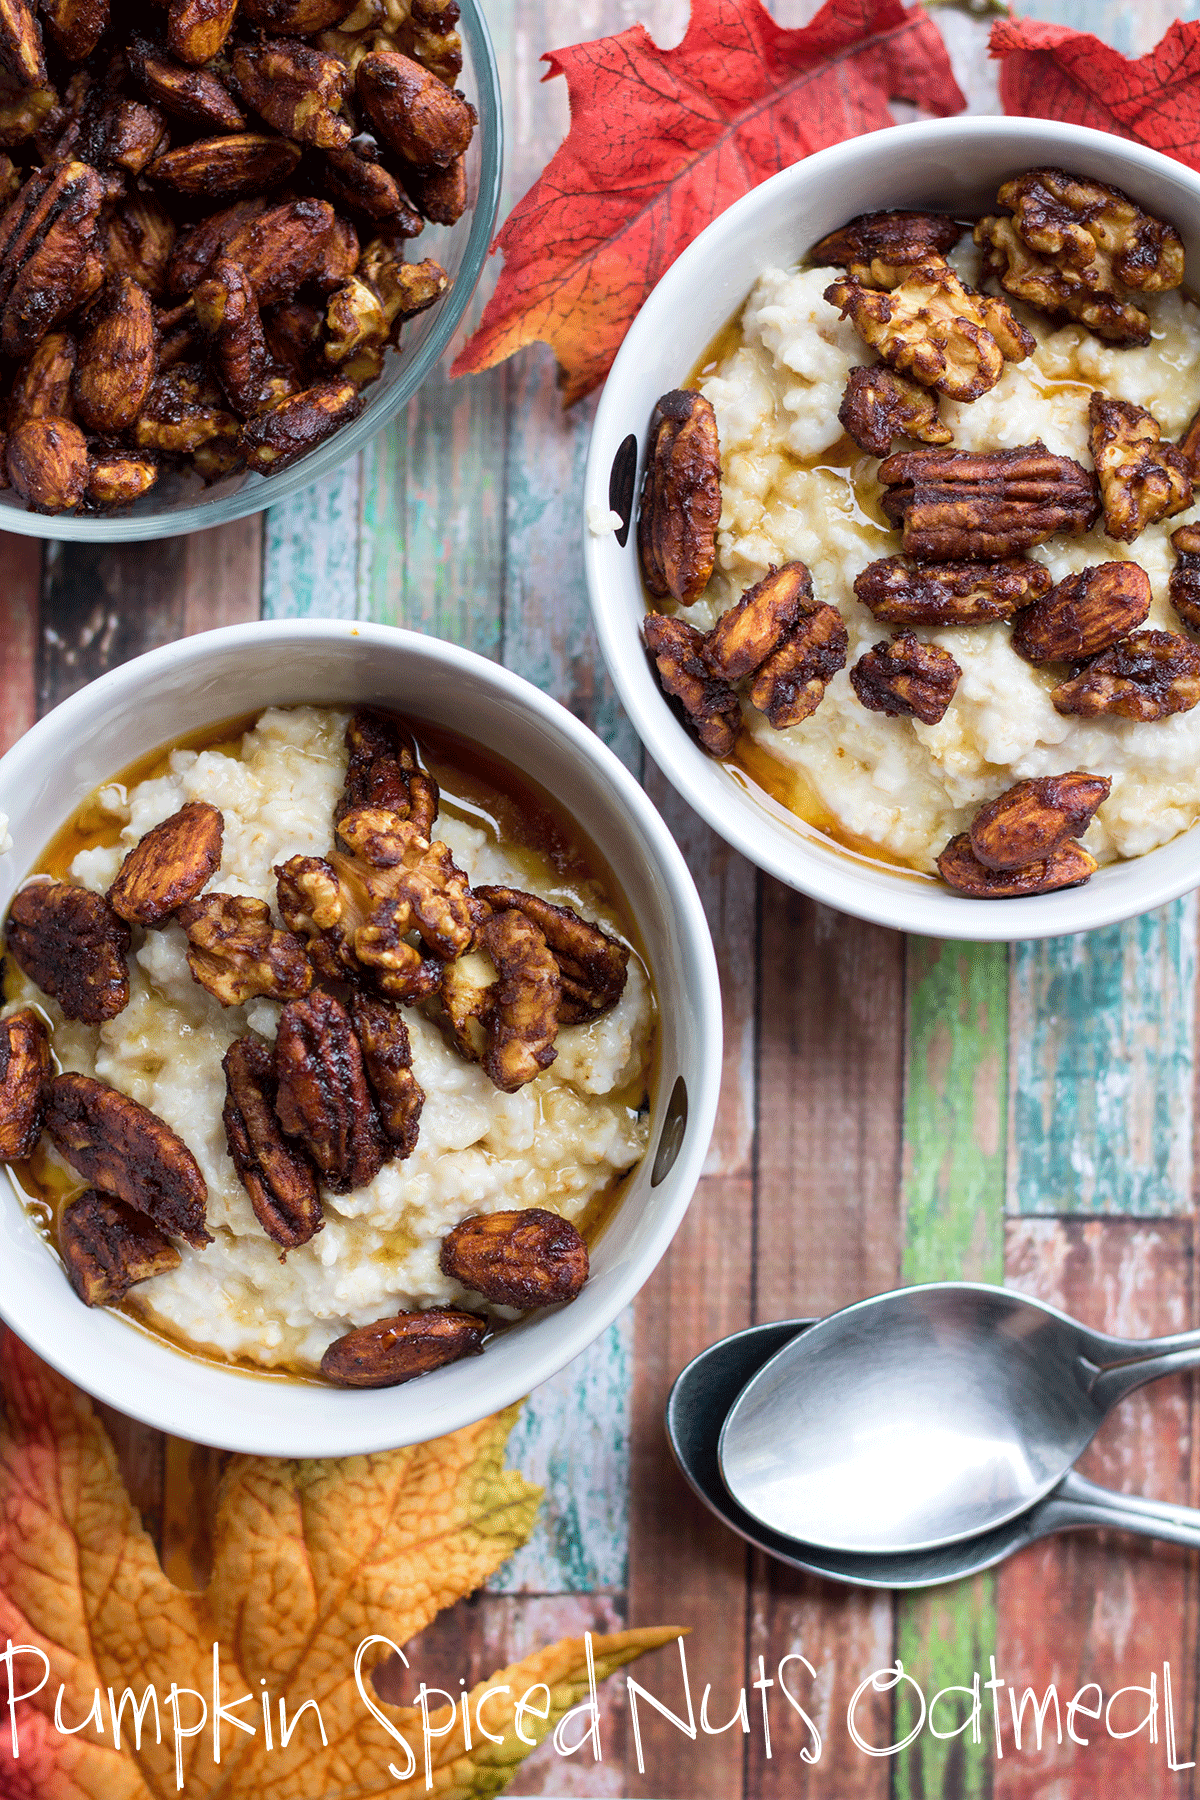 pumpkin-spiced-nuts-oatmeal-a-perfect-fall-breakfast-from-nap-time-creations